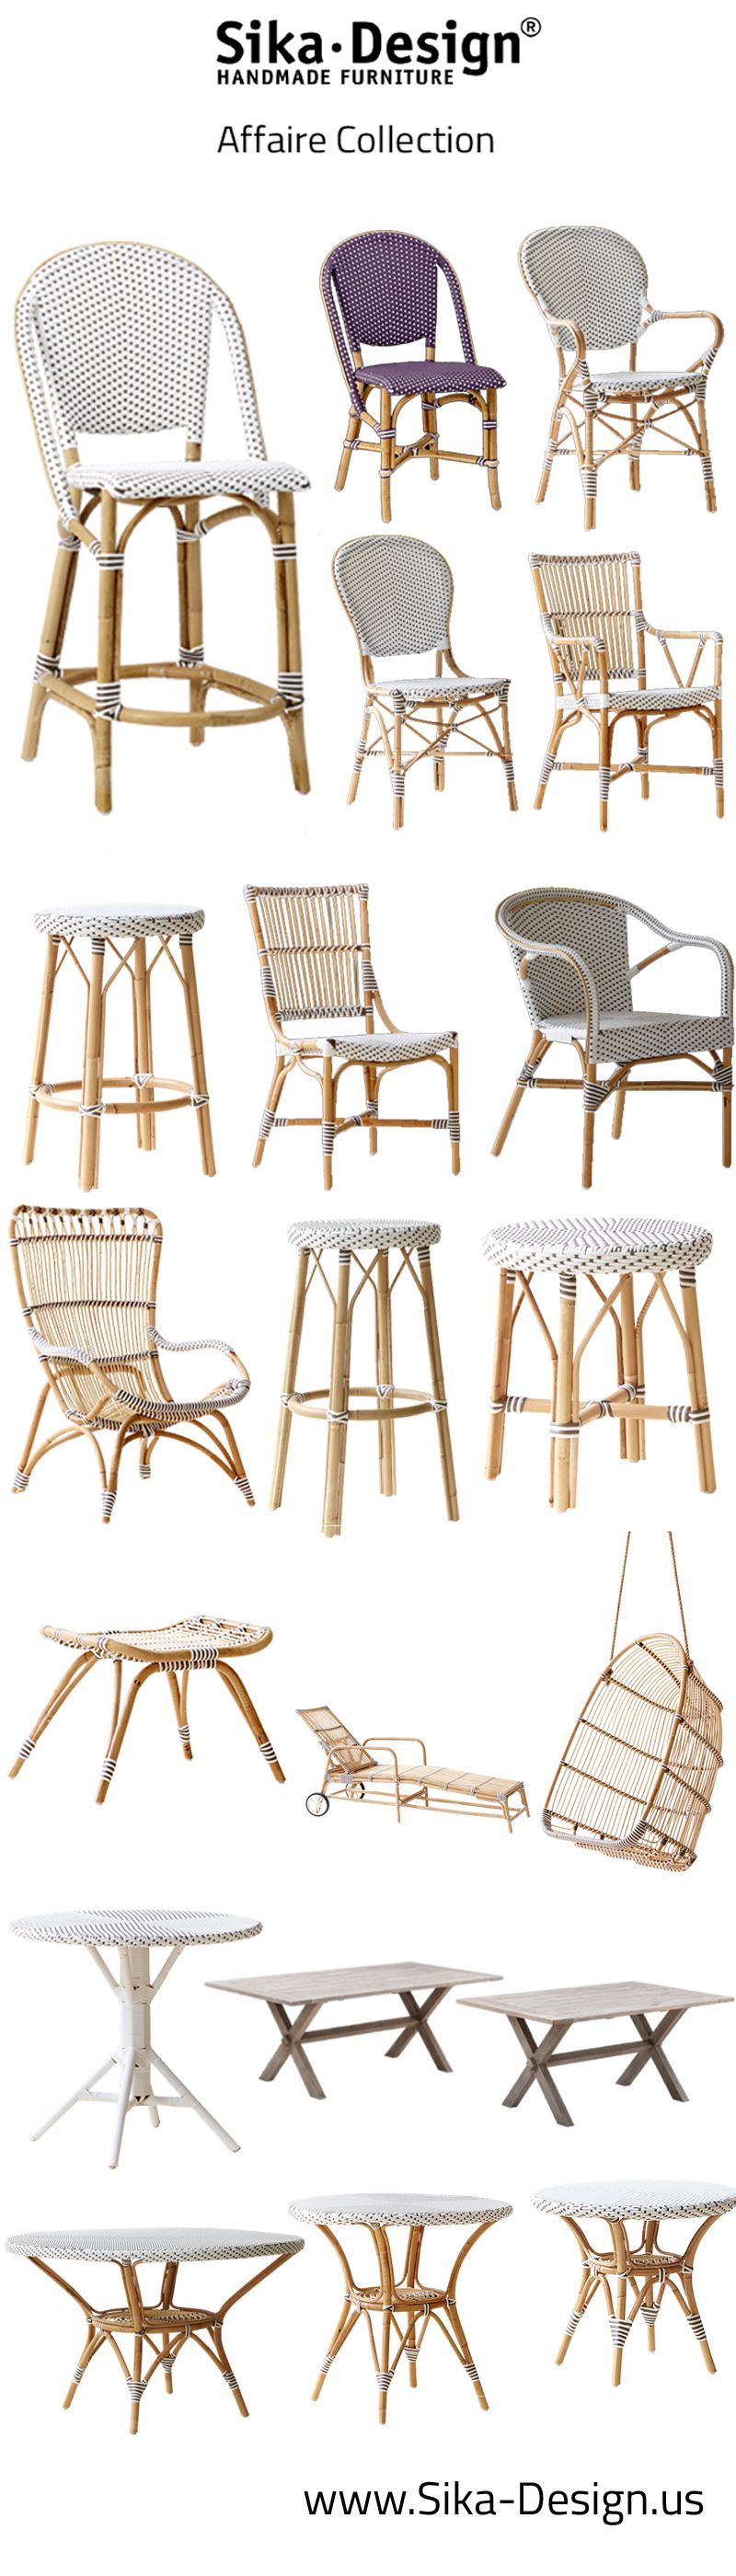 Handcrafted Affaire French bistro chairs  stools and tables The Affaire Collection is designed for upper end cafes  brasseries  . French Bistro Chairs Toronto. Home Design Ideas